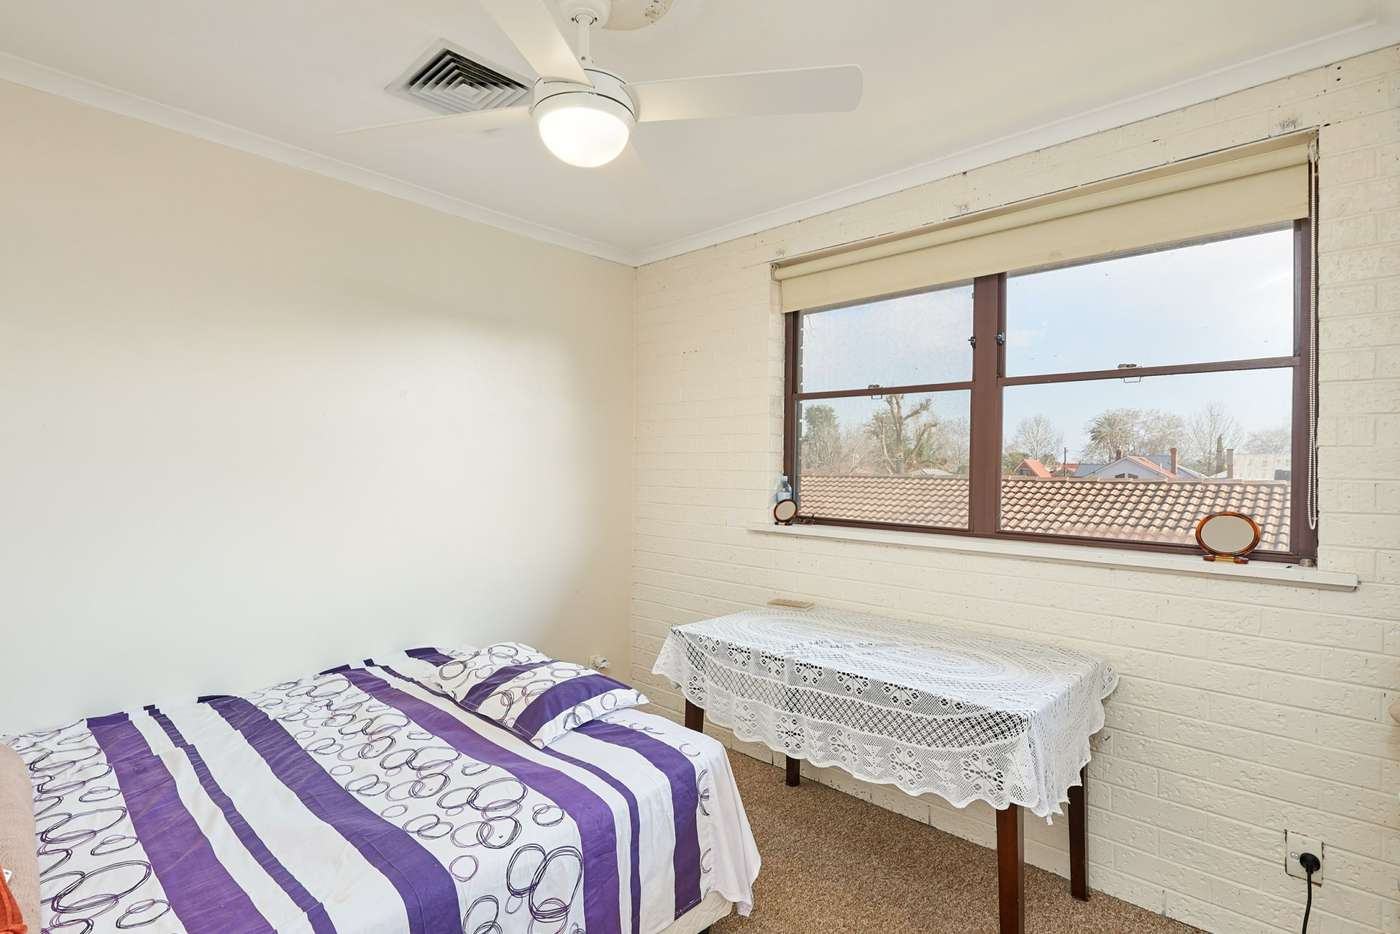 Sixth view of Homely unit listing, Unit 4/6 Lampe Avenue, Wagga Wagga NSW 2650